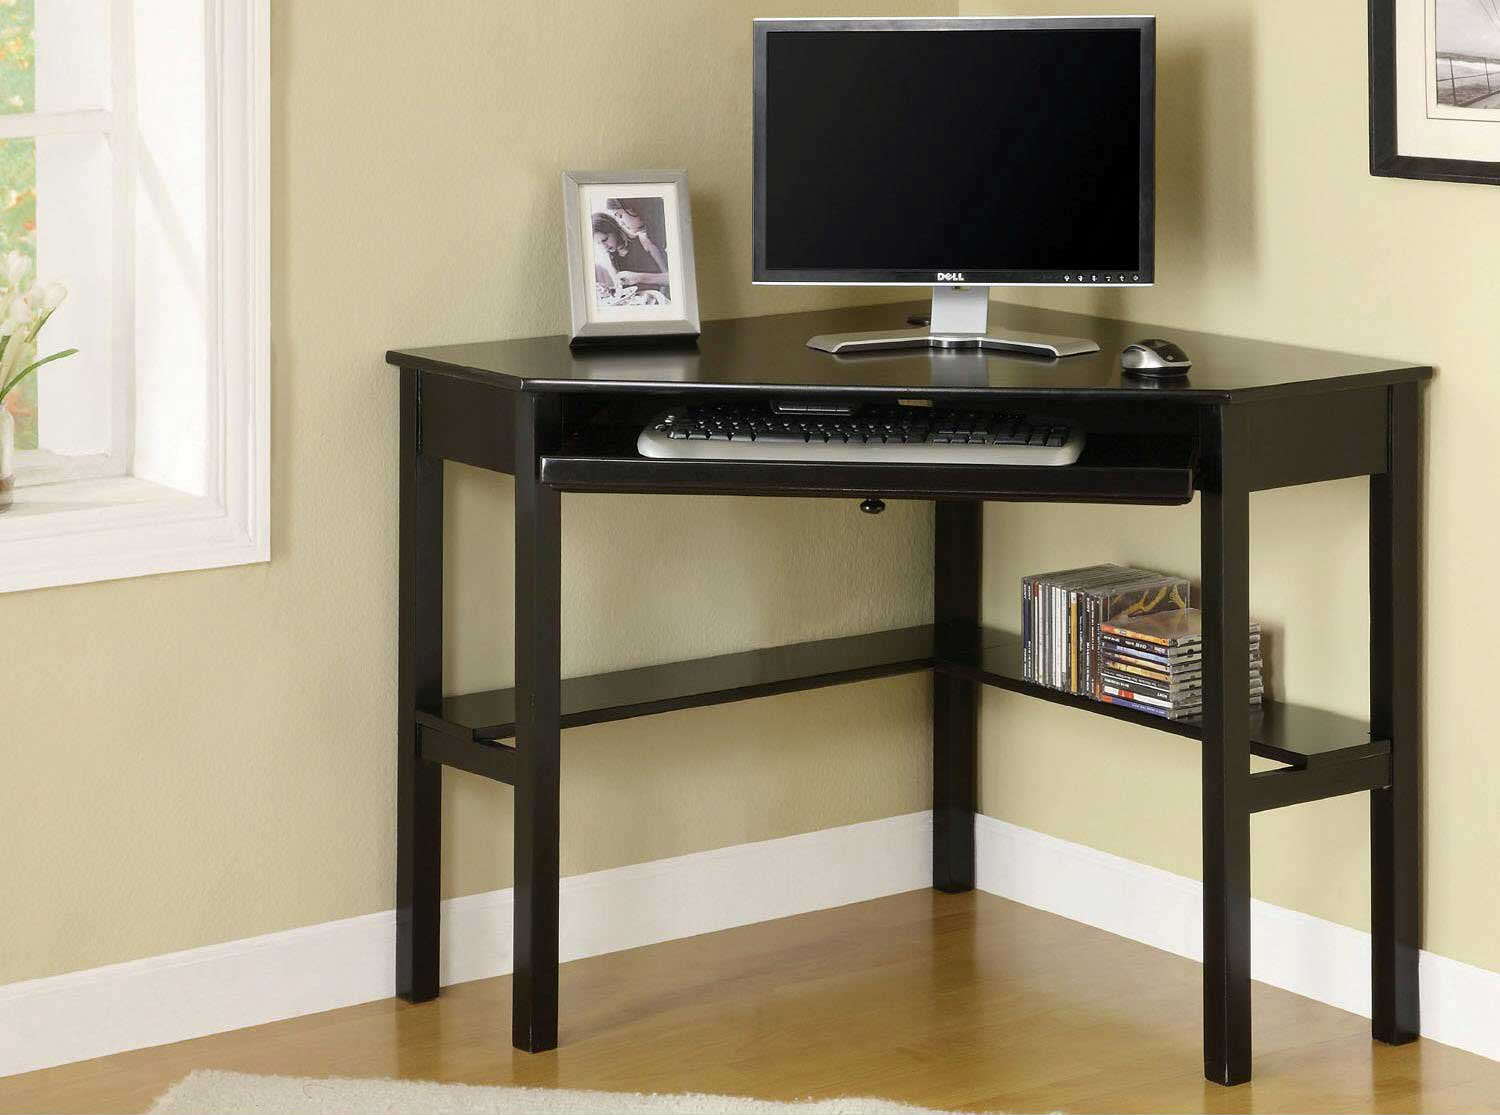 Home Decor small corner computer desk image of: corner computer desk with hutch style lgwnpgb